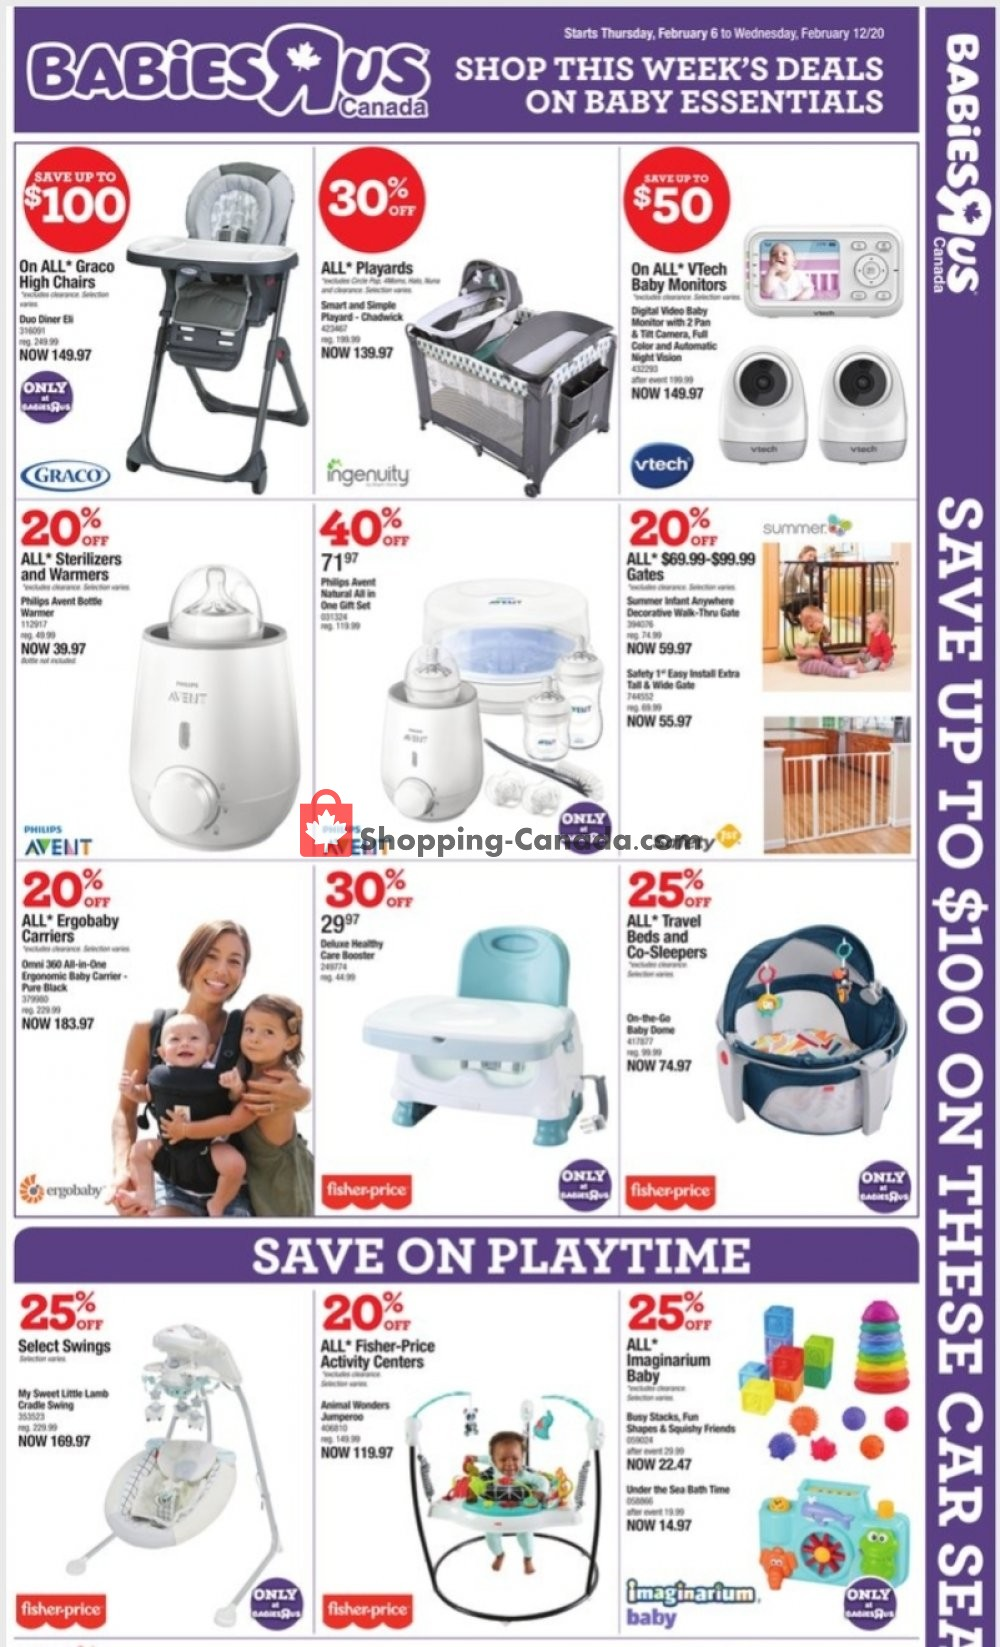 Flyer Toys R Us / Babies R Us Canada - from Thursday February 6, 2020 to Thursday February 13, 2020